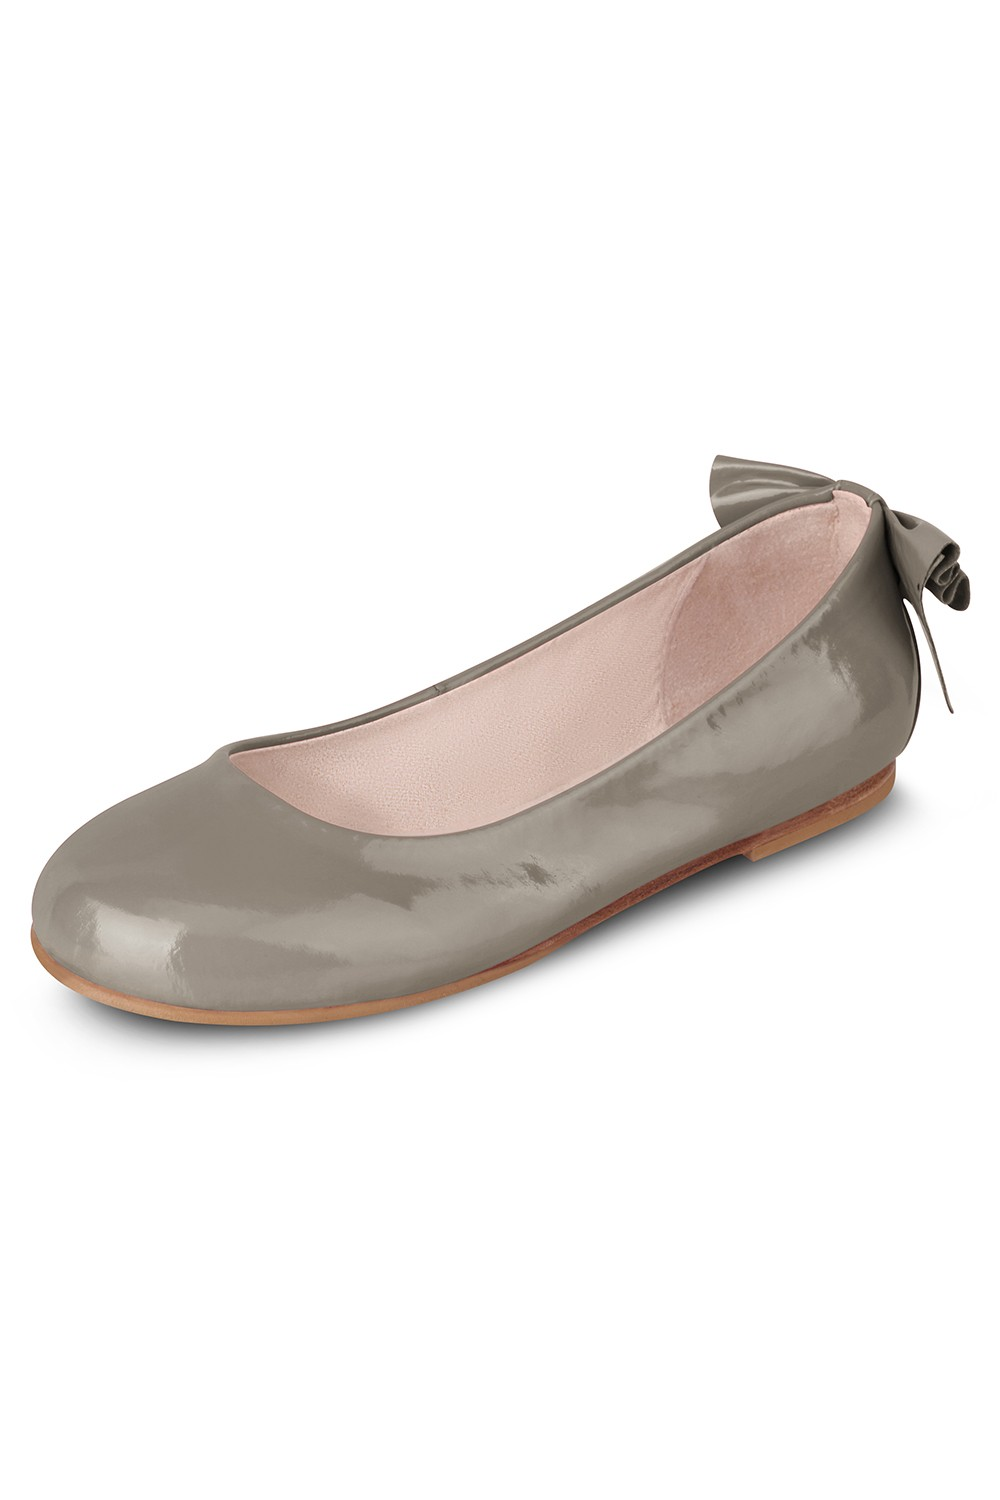 Chloe Ballet Flat Girls Fashion Shoes